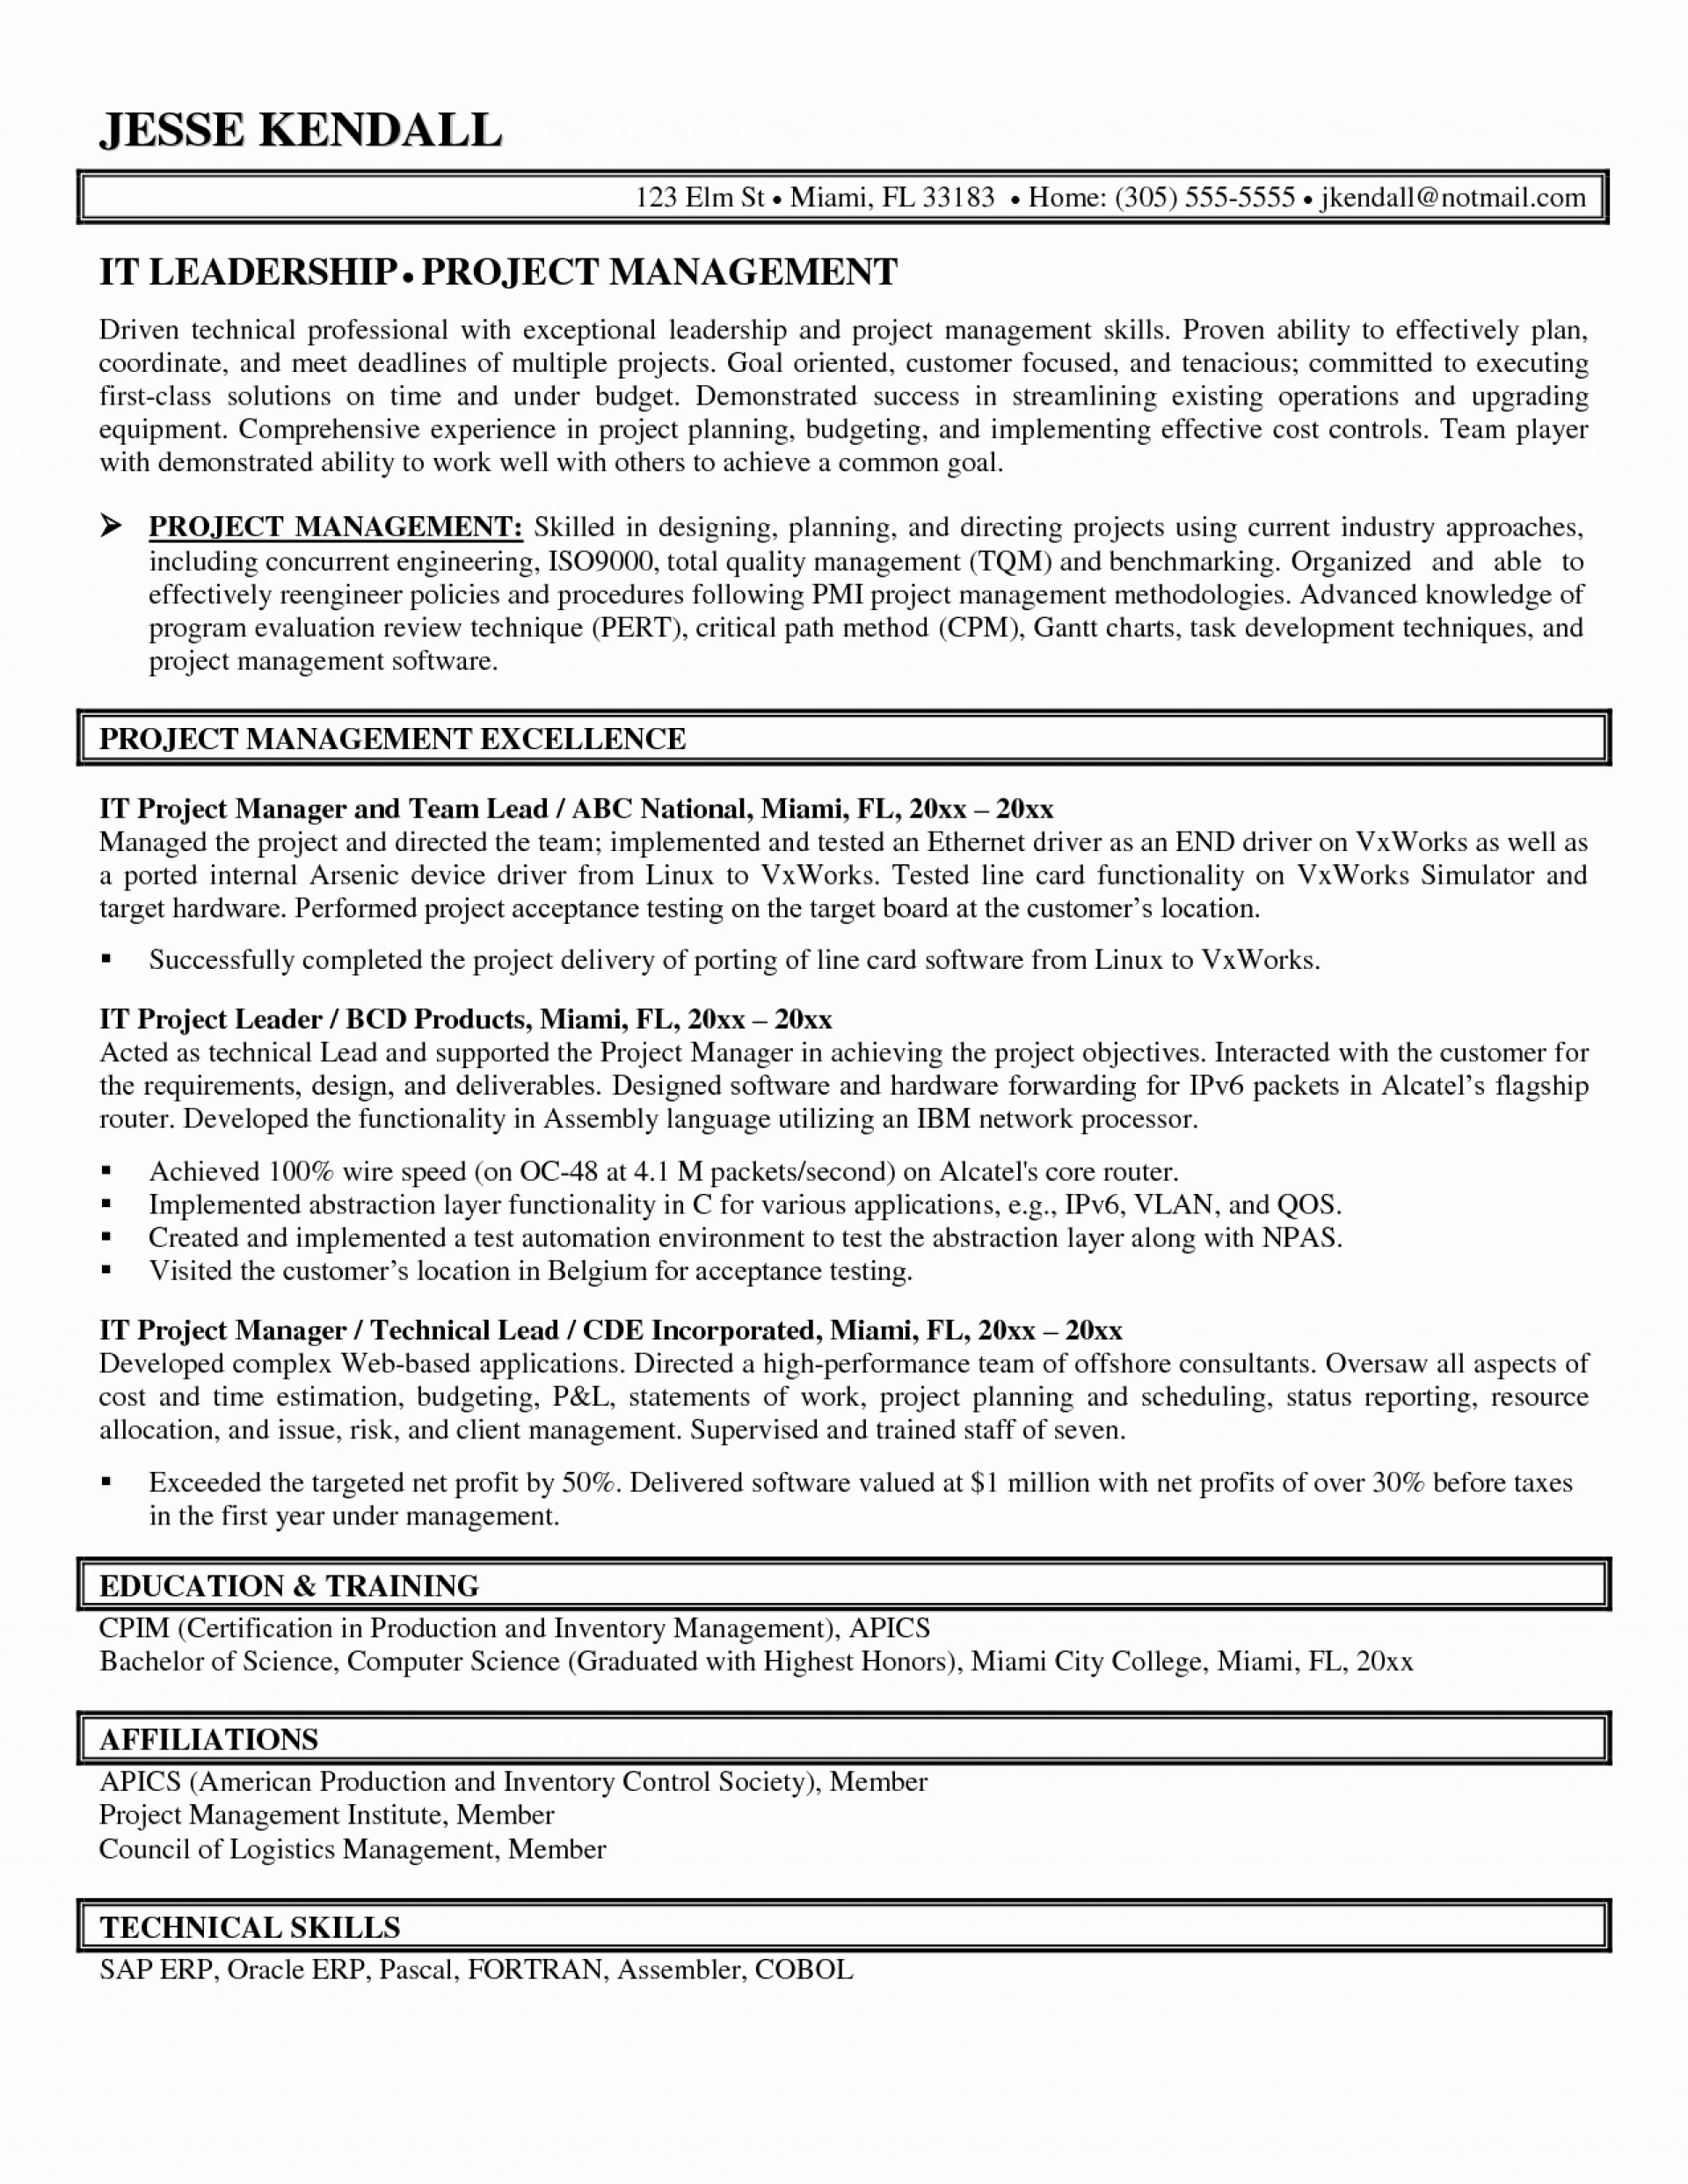 013 Leadership Goals And Objectives Examples The Best Of Shoes Writing An Informative Essay About Making Sacrifices Quizlet Awesome Sample Resume Forhnicalad Prewriting Activity Example Breathtaking Lead Exposure Lex Competition 1920